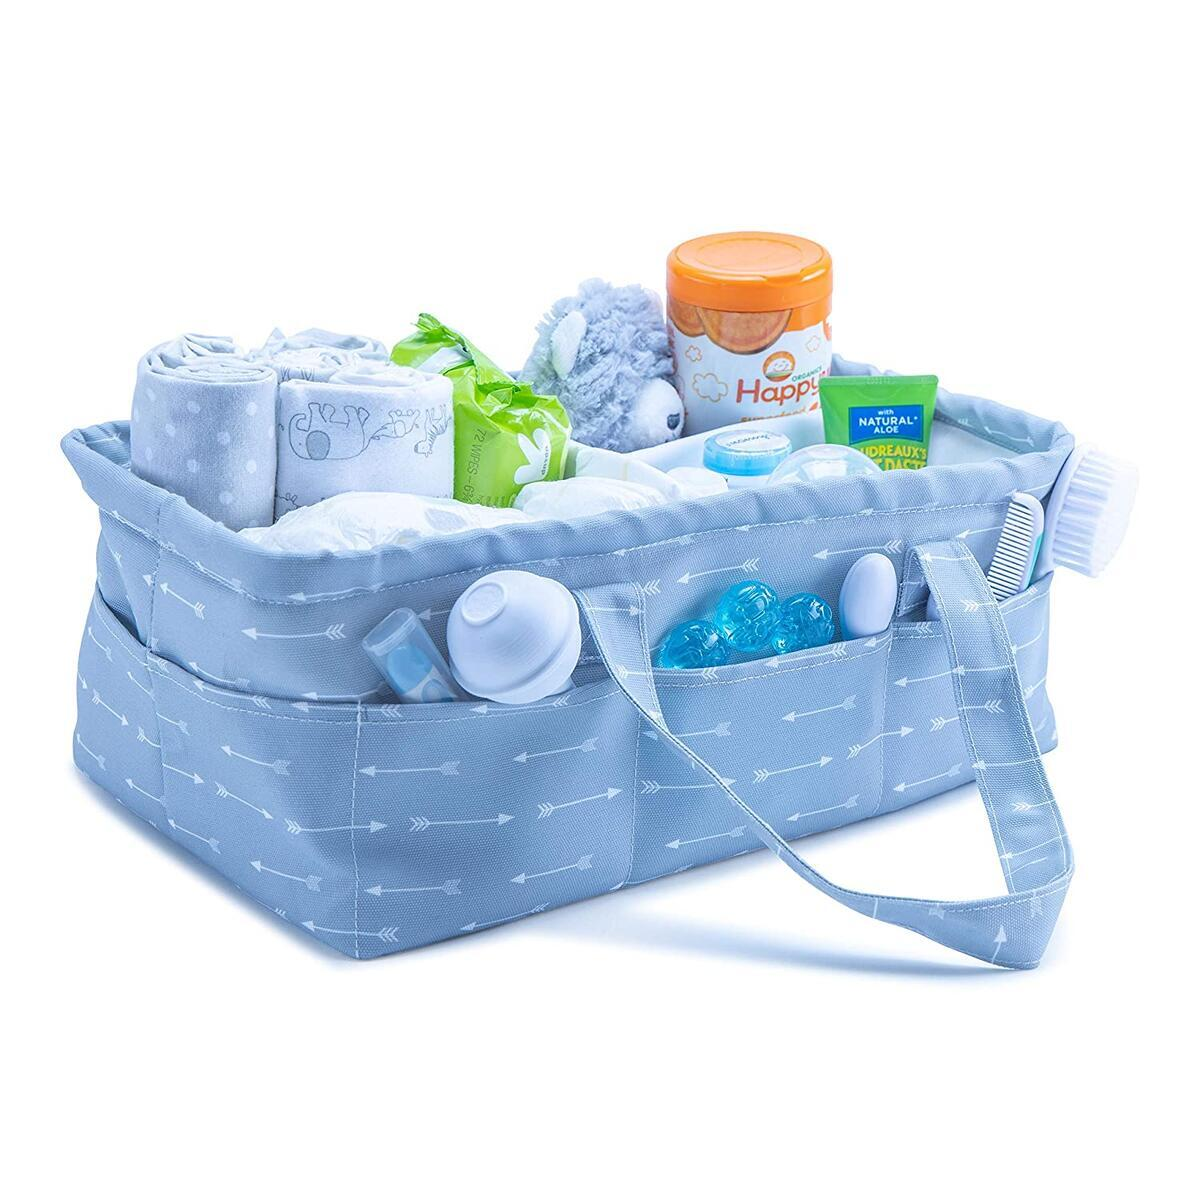 Baby Diaper Caddy Organizer - | Large Nursery Storage Bin for Changing Table | Shower Gift Basket | Car Travel Tote Bag | Newborn Registry Must Have…